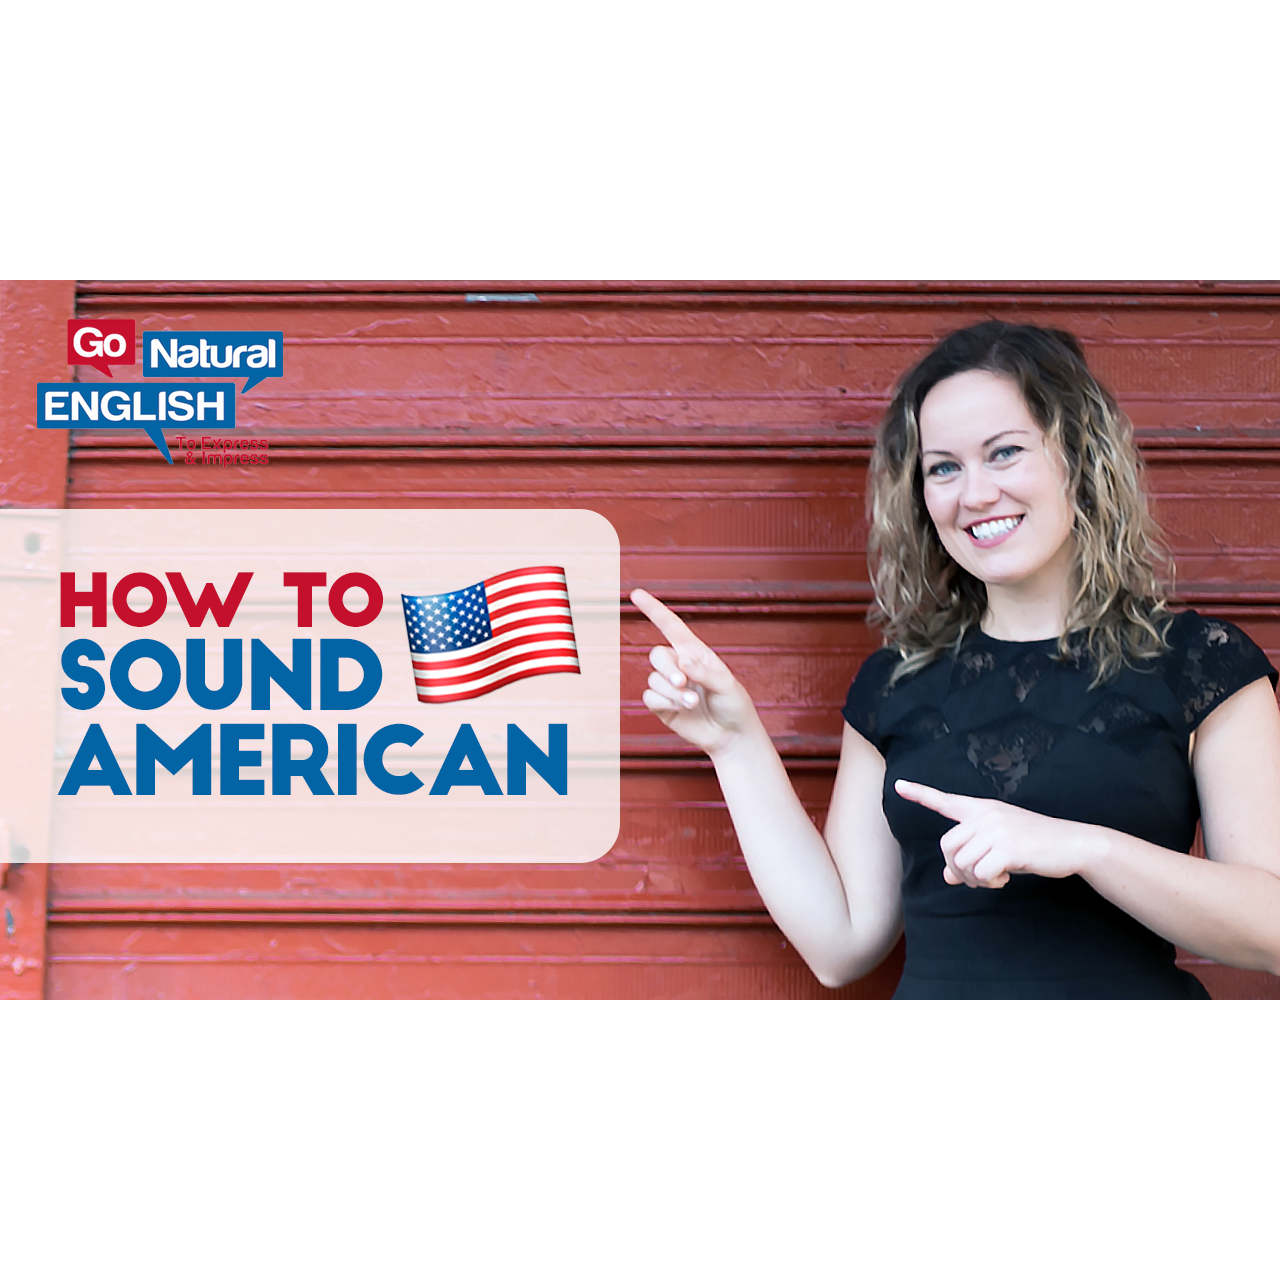 8 Ways To Speak With A North American Accent | Go Natural